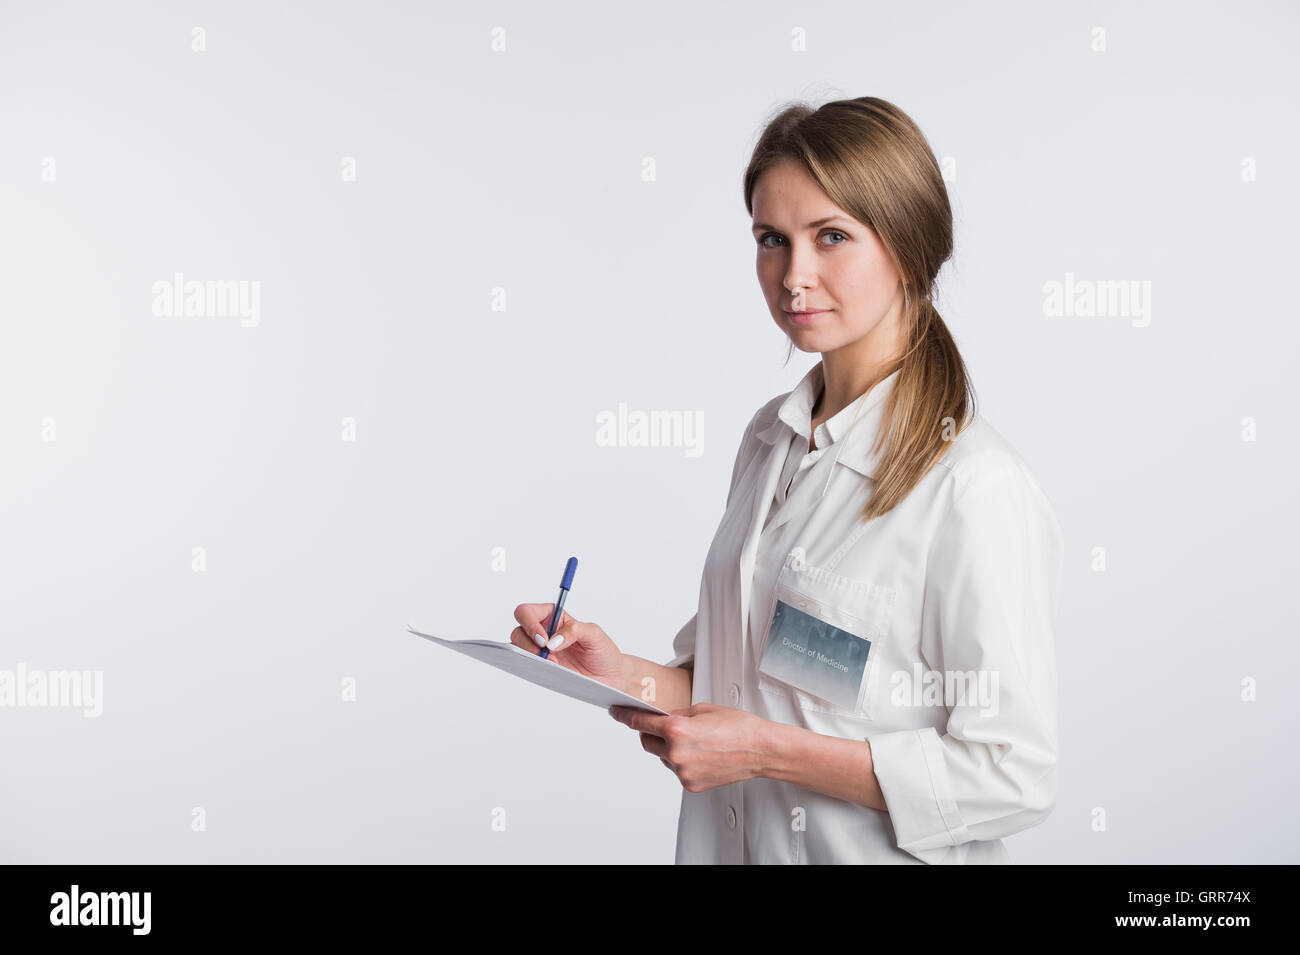 Cheerful medical doctor woman taking notes. Isolated on white Stock Photo